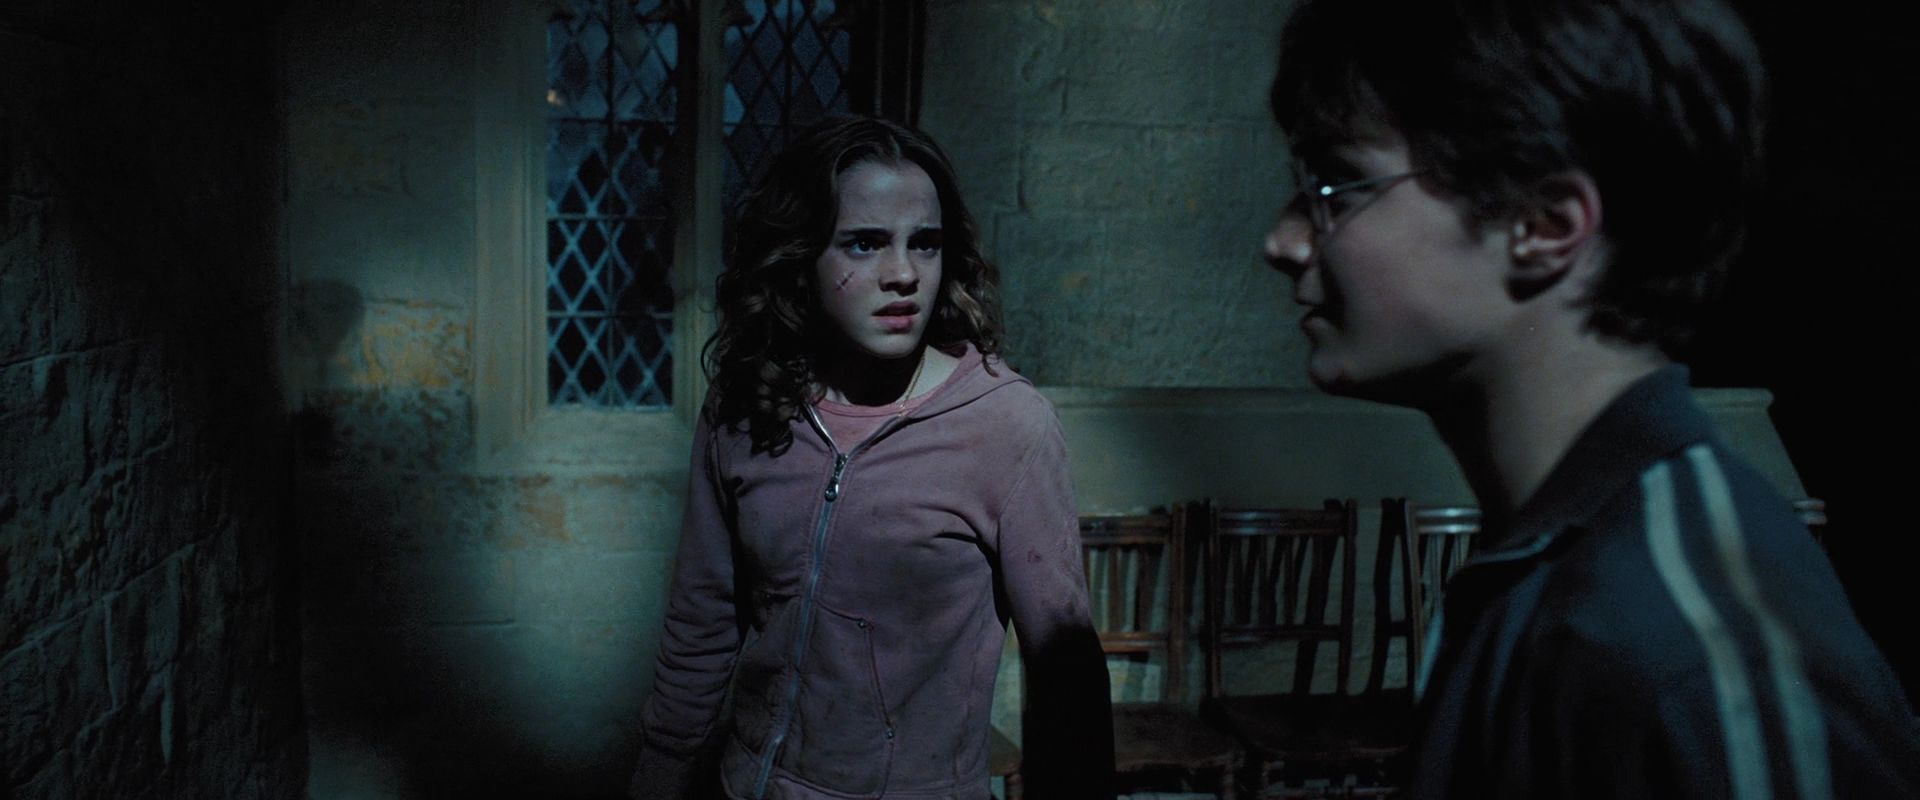 essay about harry potter and the prisoner of azkaban Dive deep into j k rowling's harry potter and the prisoner of azkaban with extended analysis, commentary, and discussion.